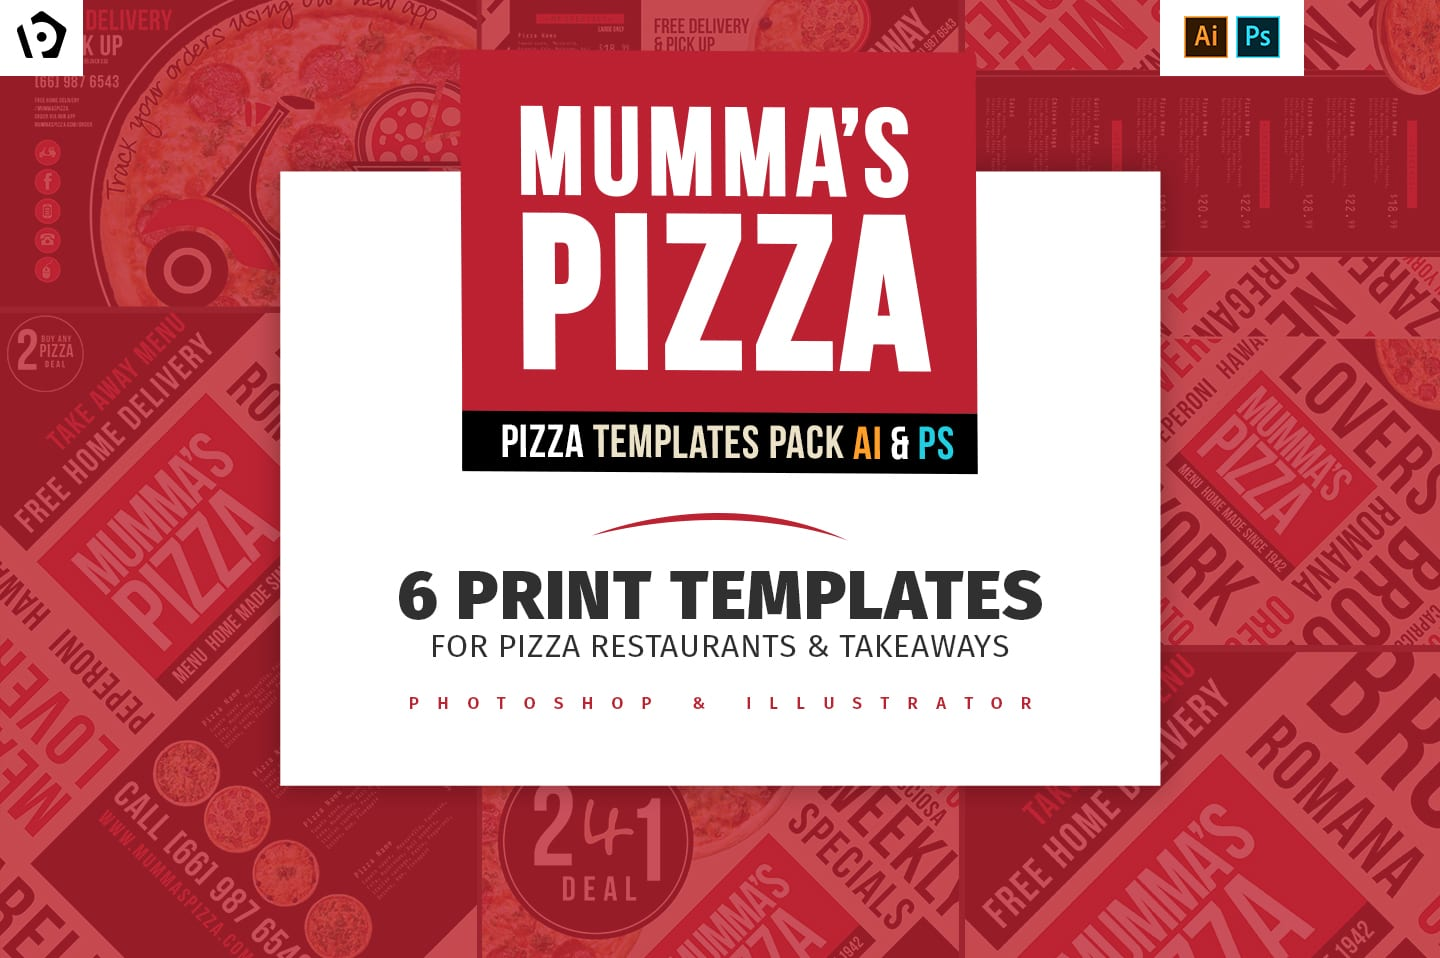 Pizza Templates Pack - BrandPacks